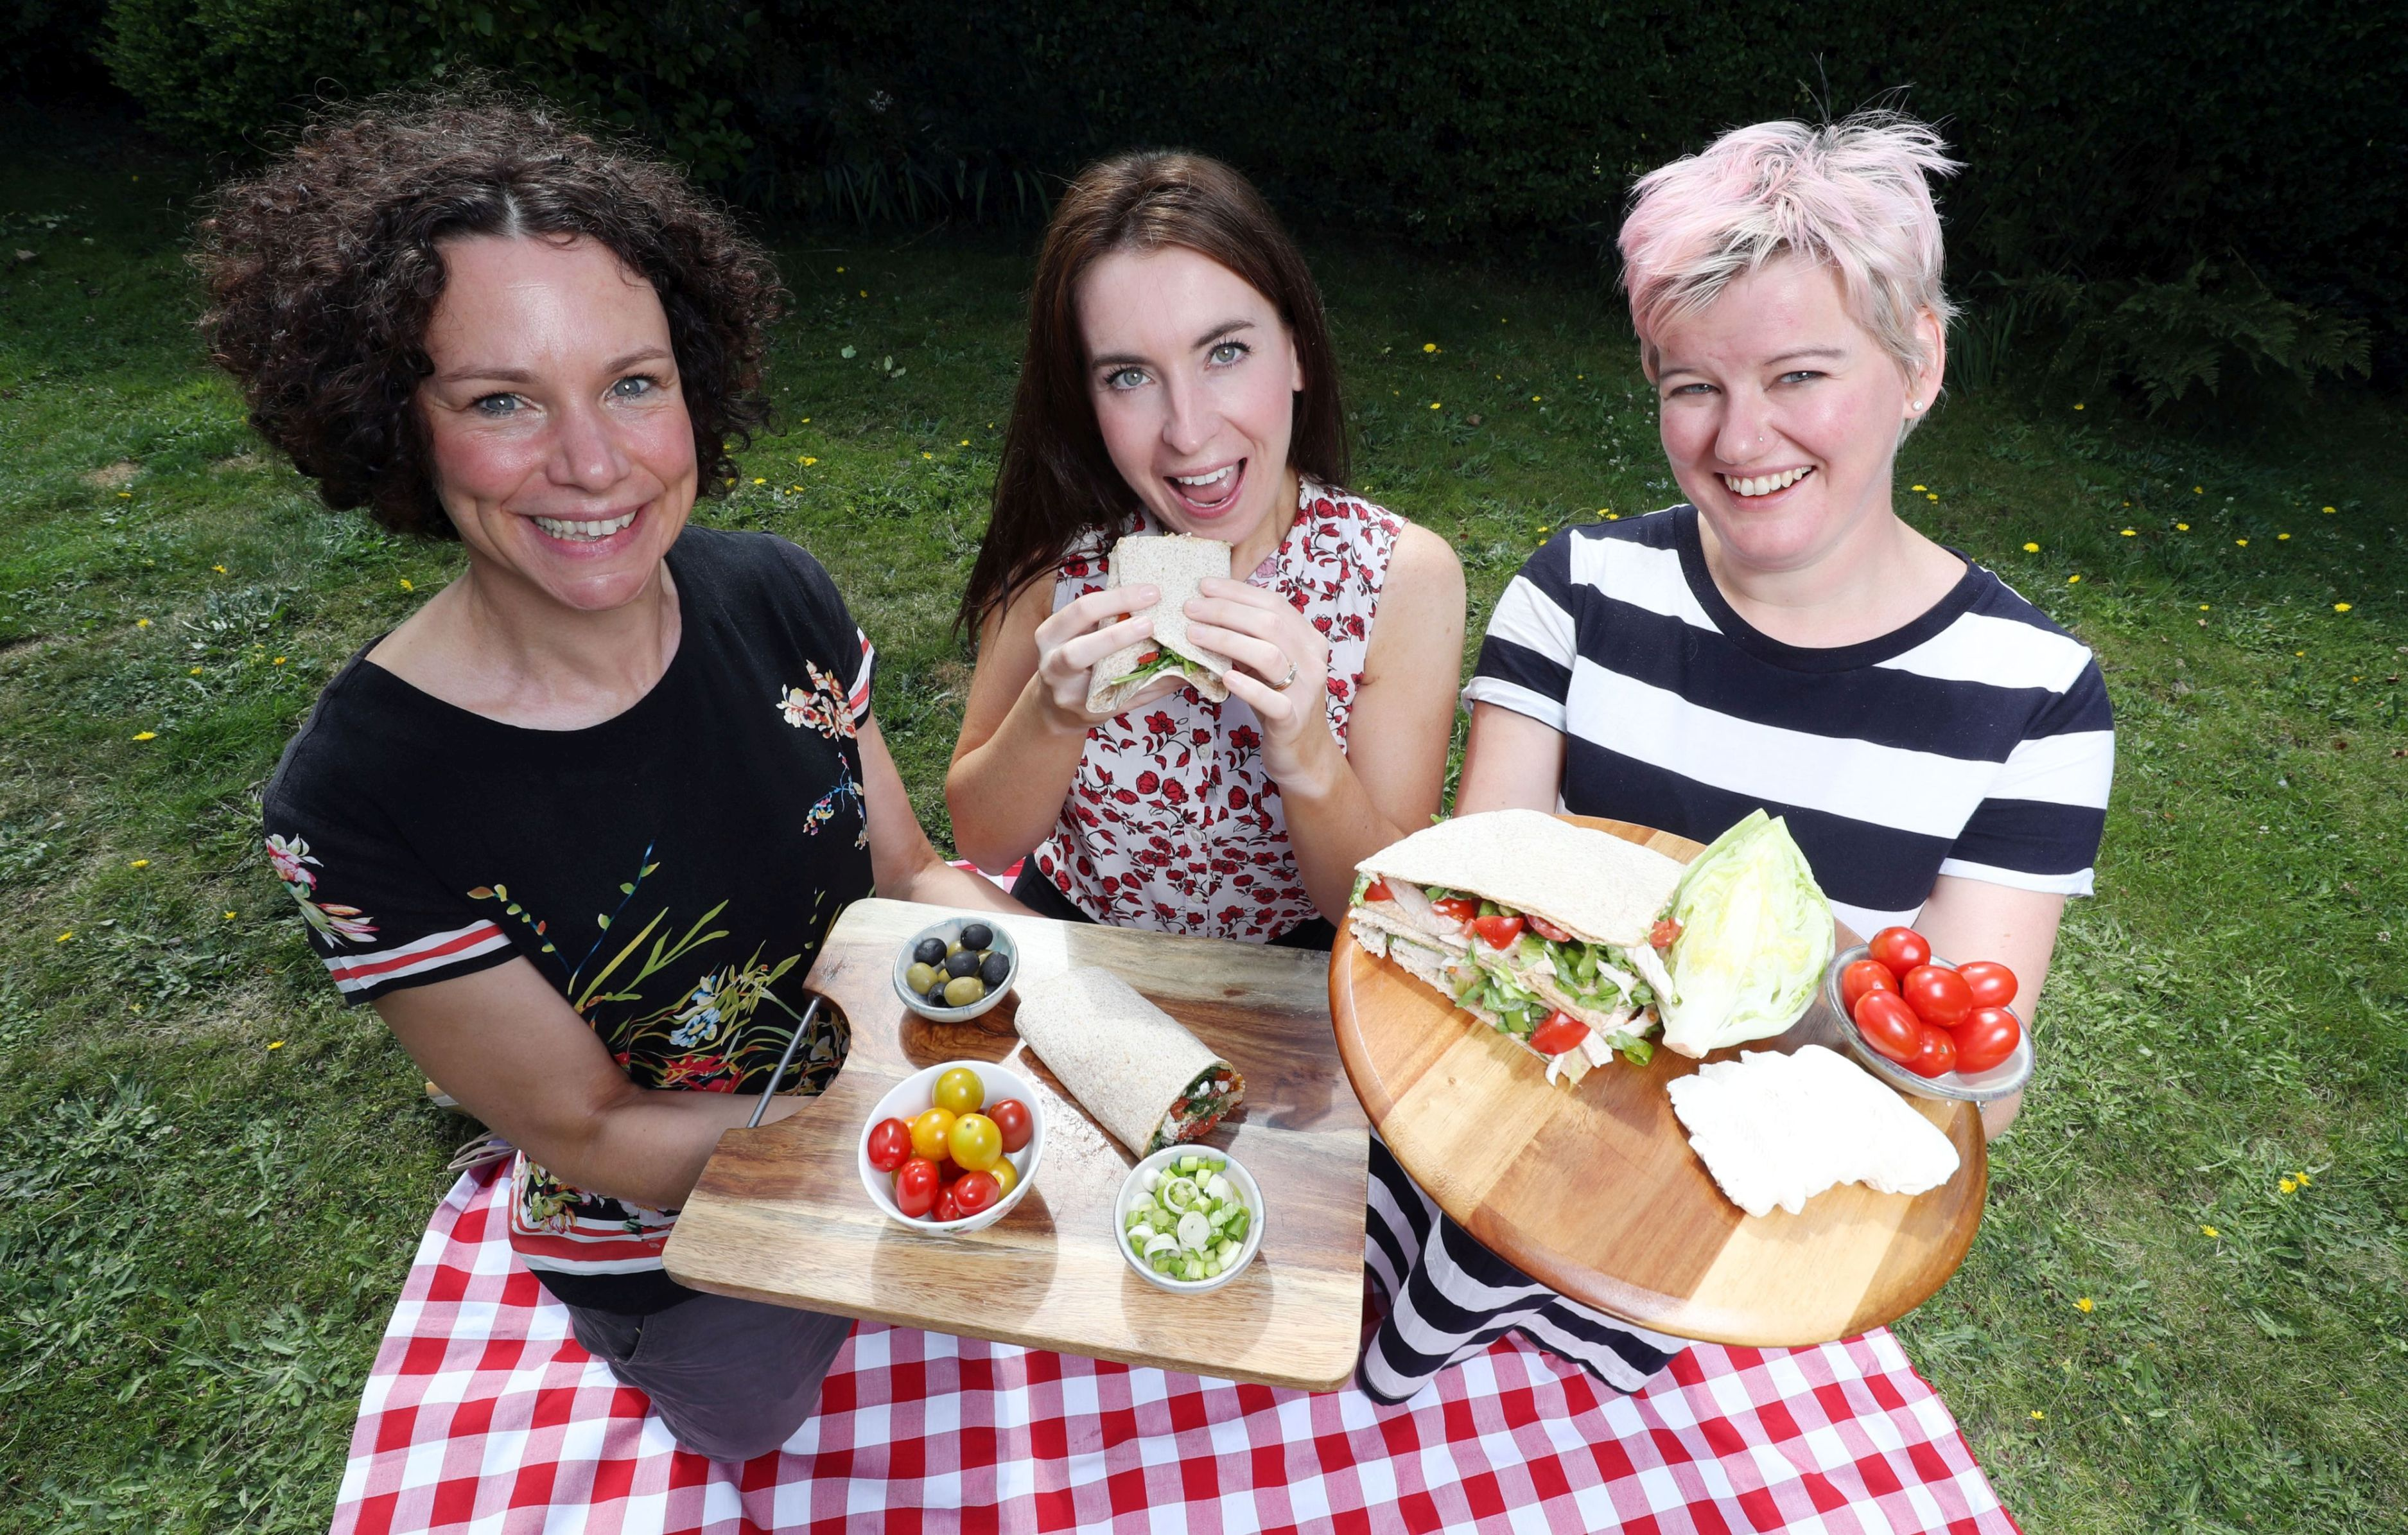 It's a wrap – but which one should win healthy lunch off crown?